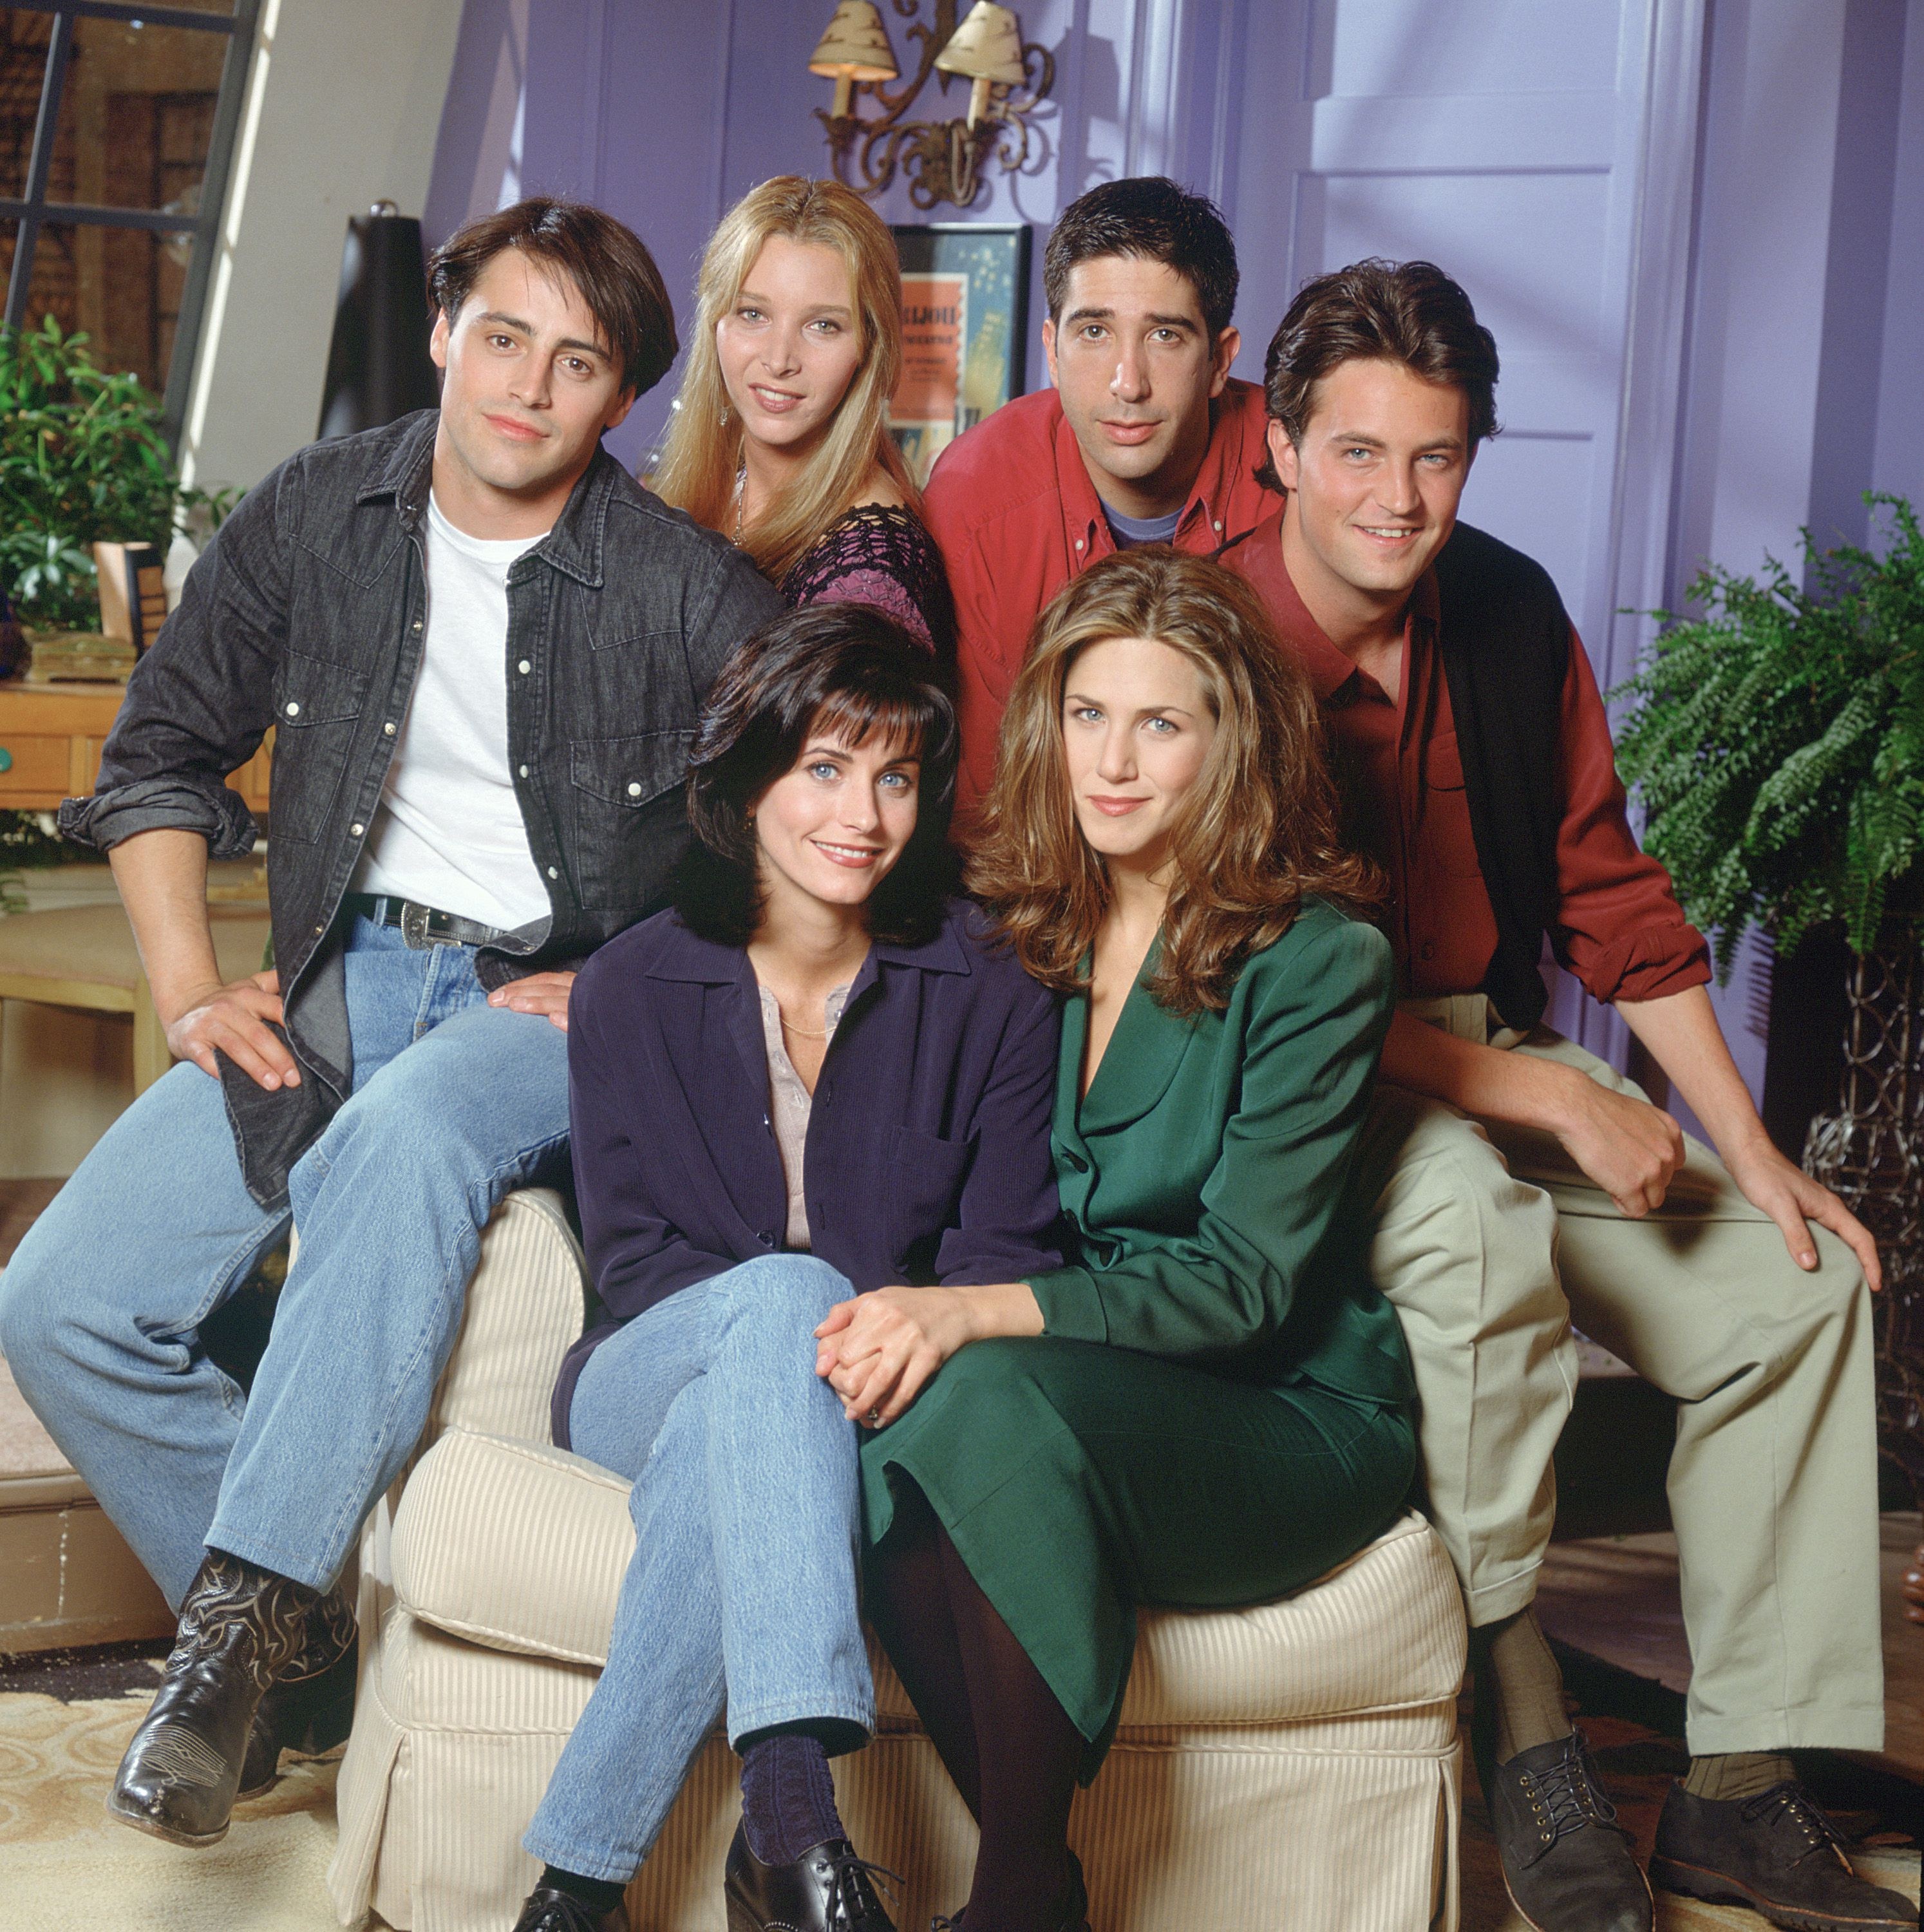 60 friends facts every superfan should know - friends tv show trivia